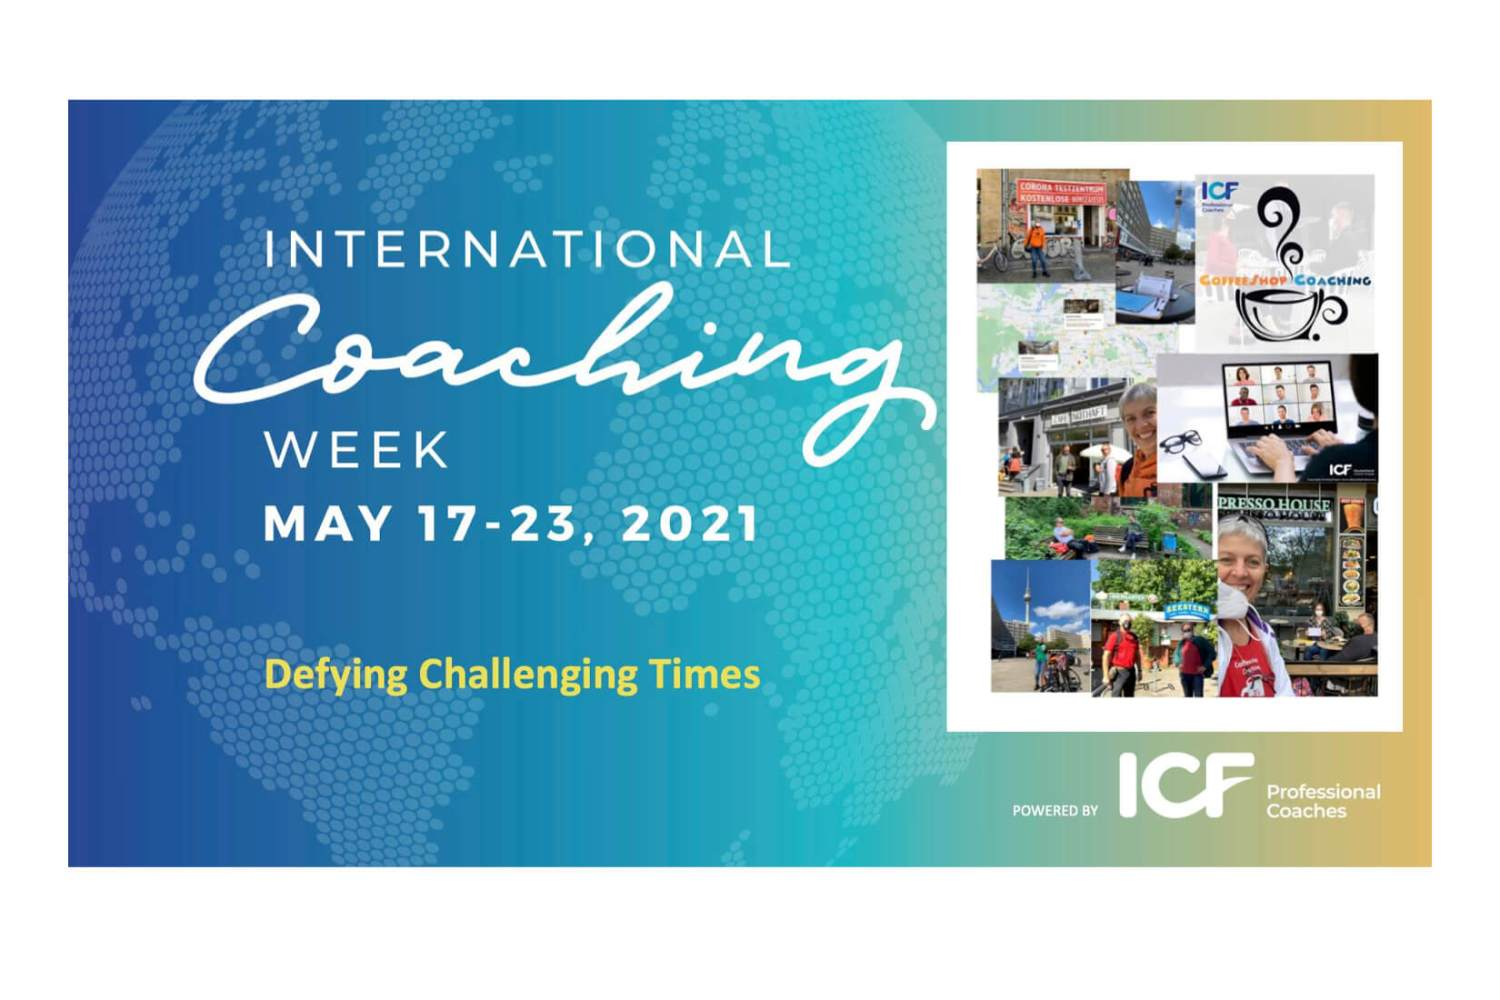 Collage of coaches group coffeeshop coaching around Berlin Germany during International Coaching Week May 17-23 2021. The theme is Defying Challenging Times